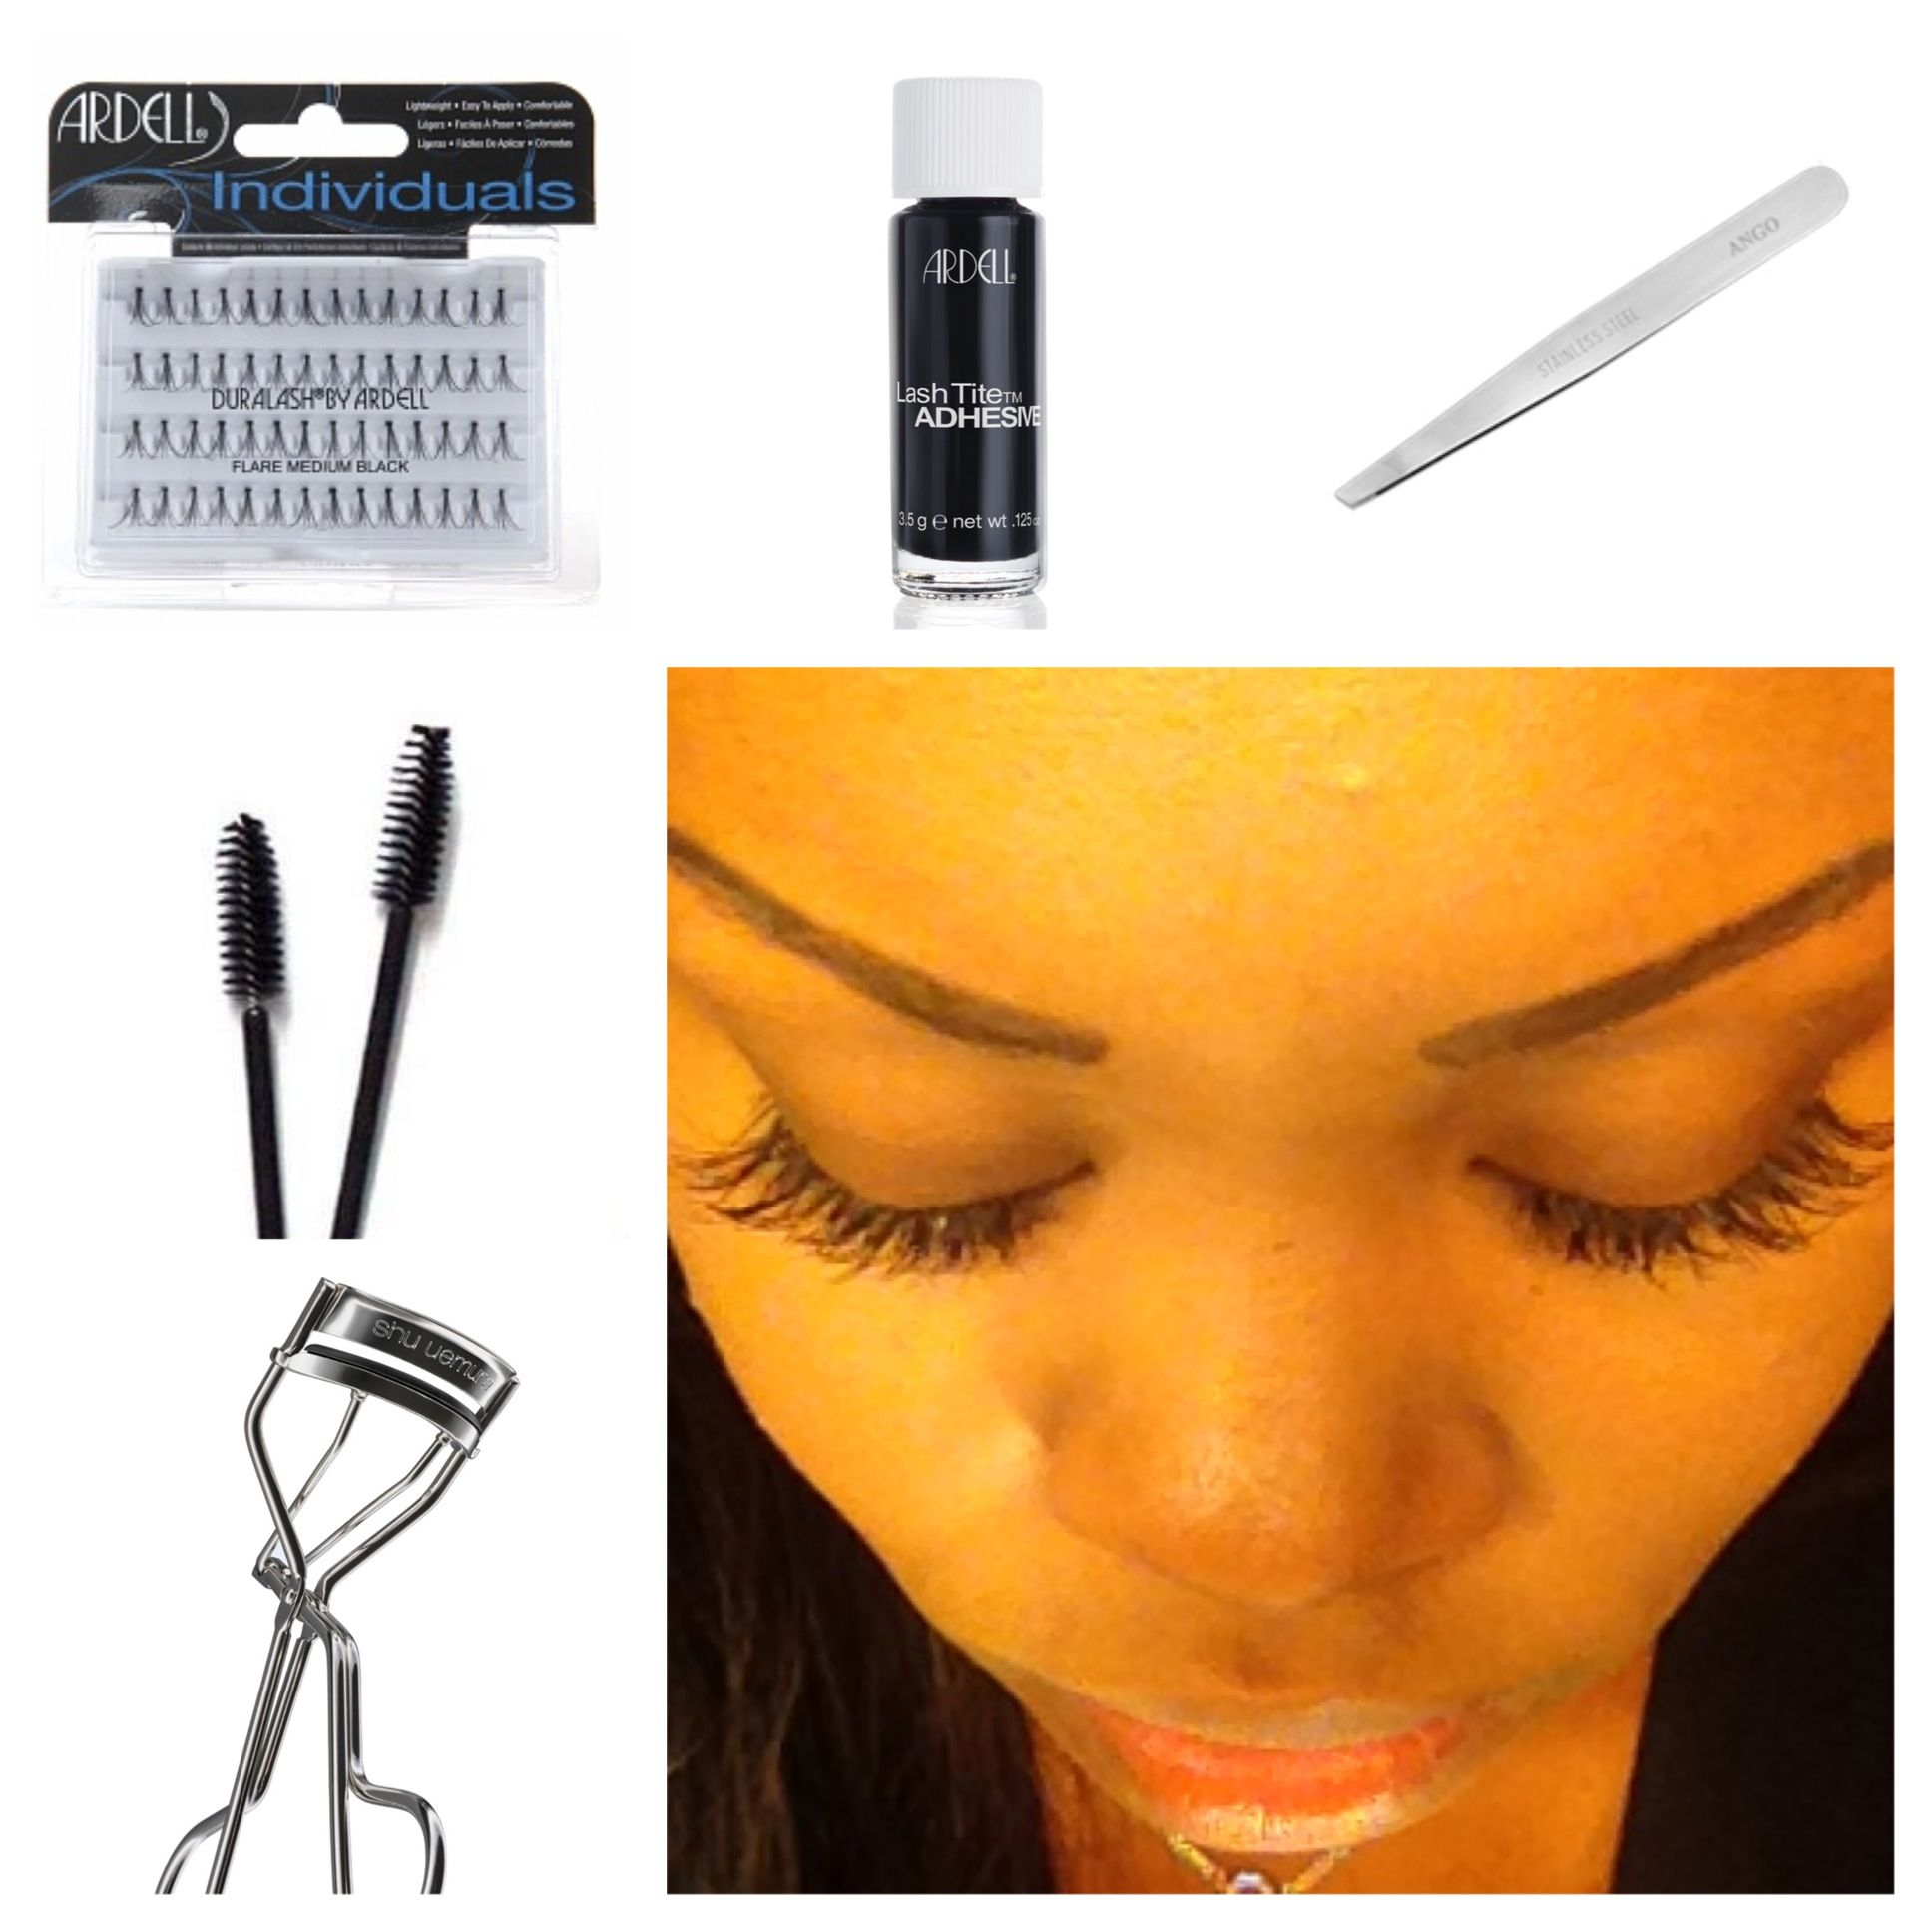 Diy Eyelash Extensions Diy Lash Extensions You 39ll Need 1 2 Packs Of Ardell